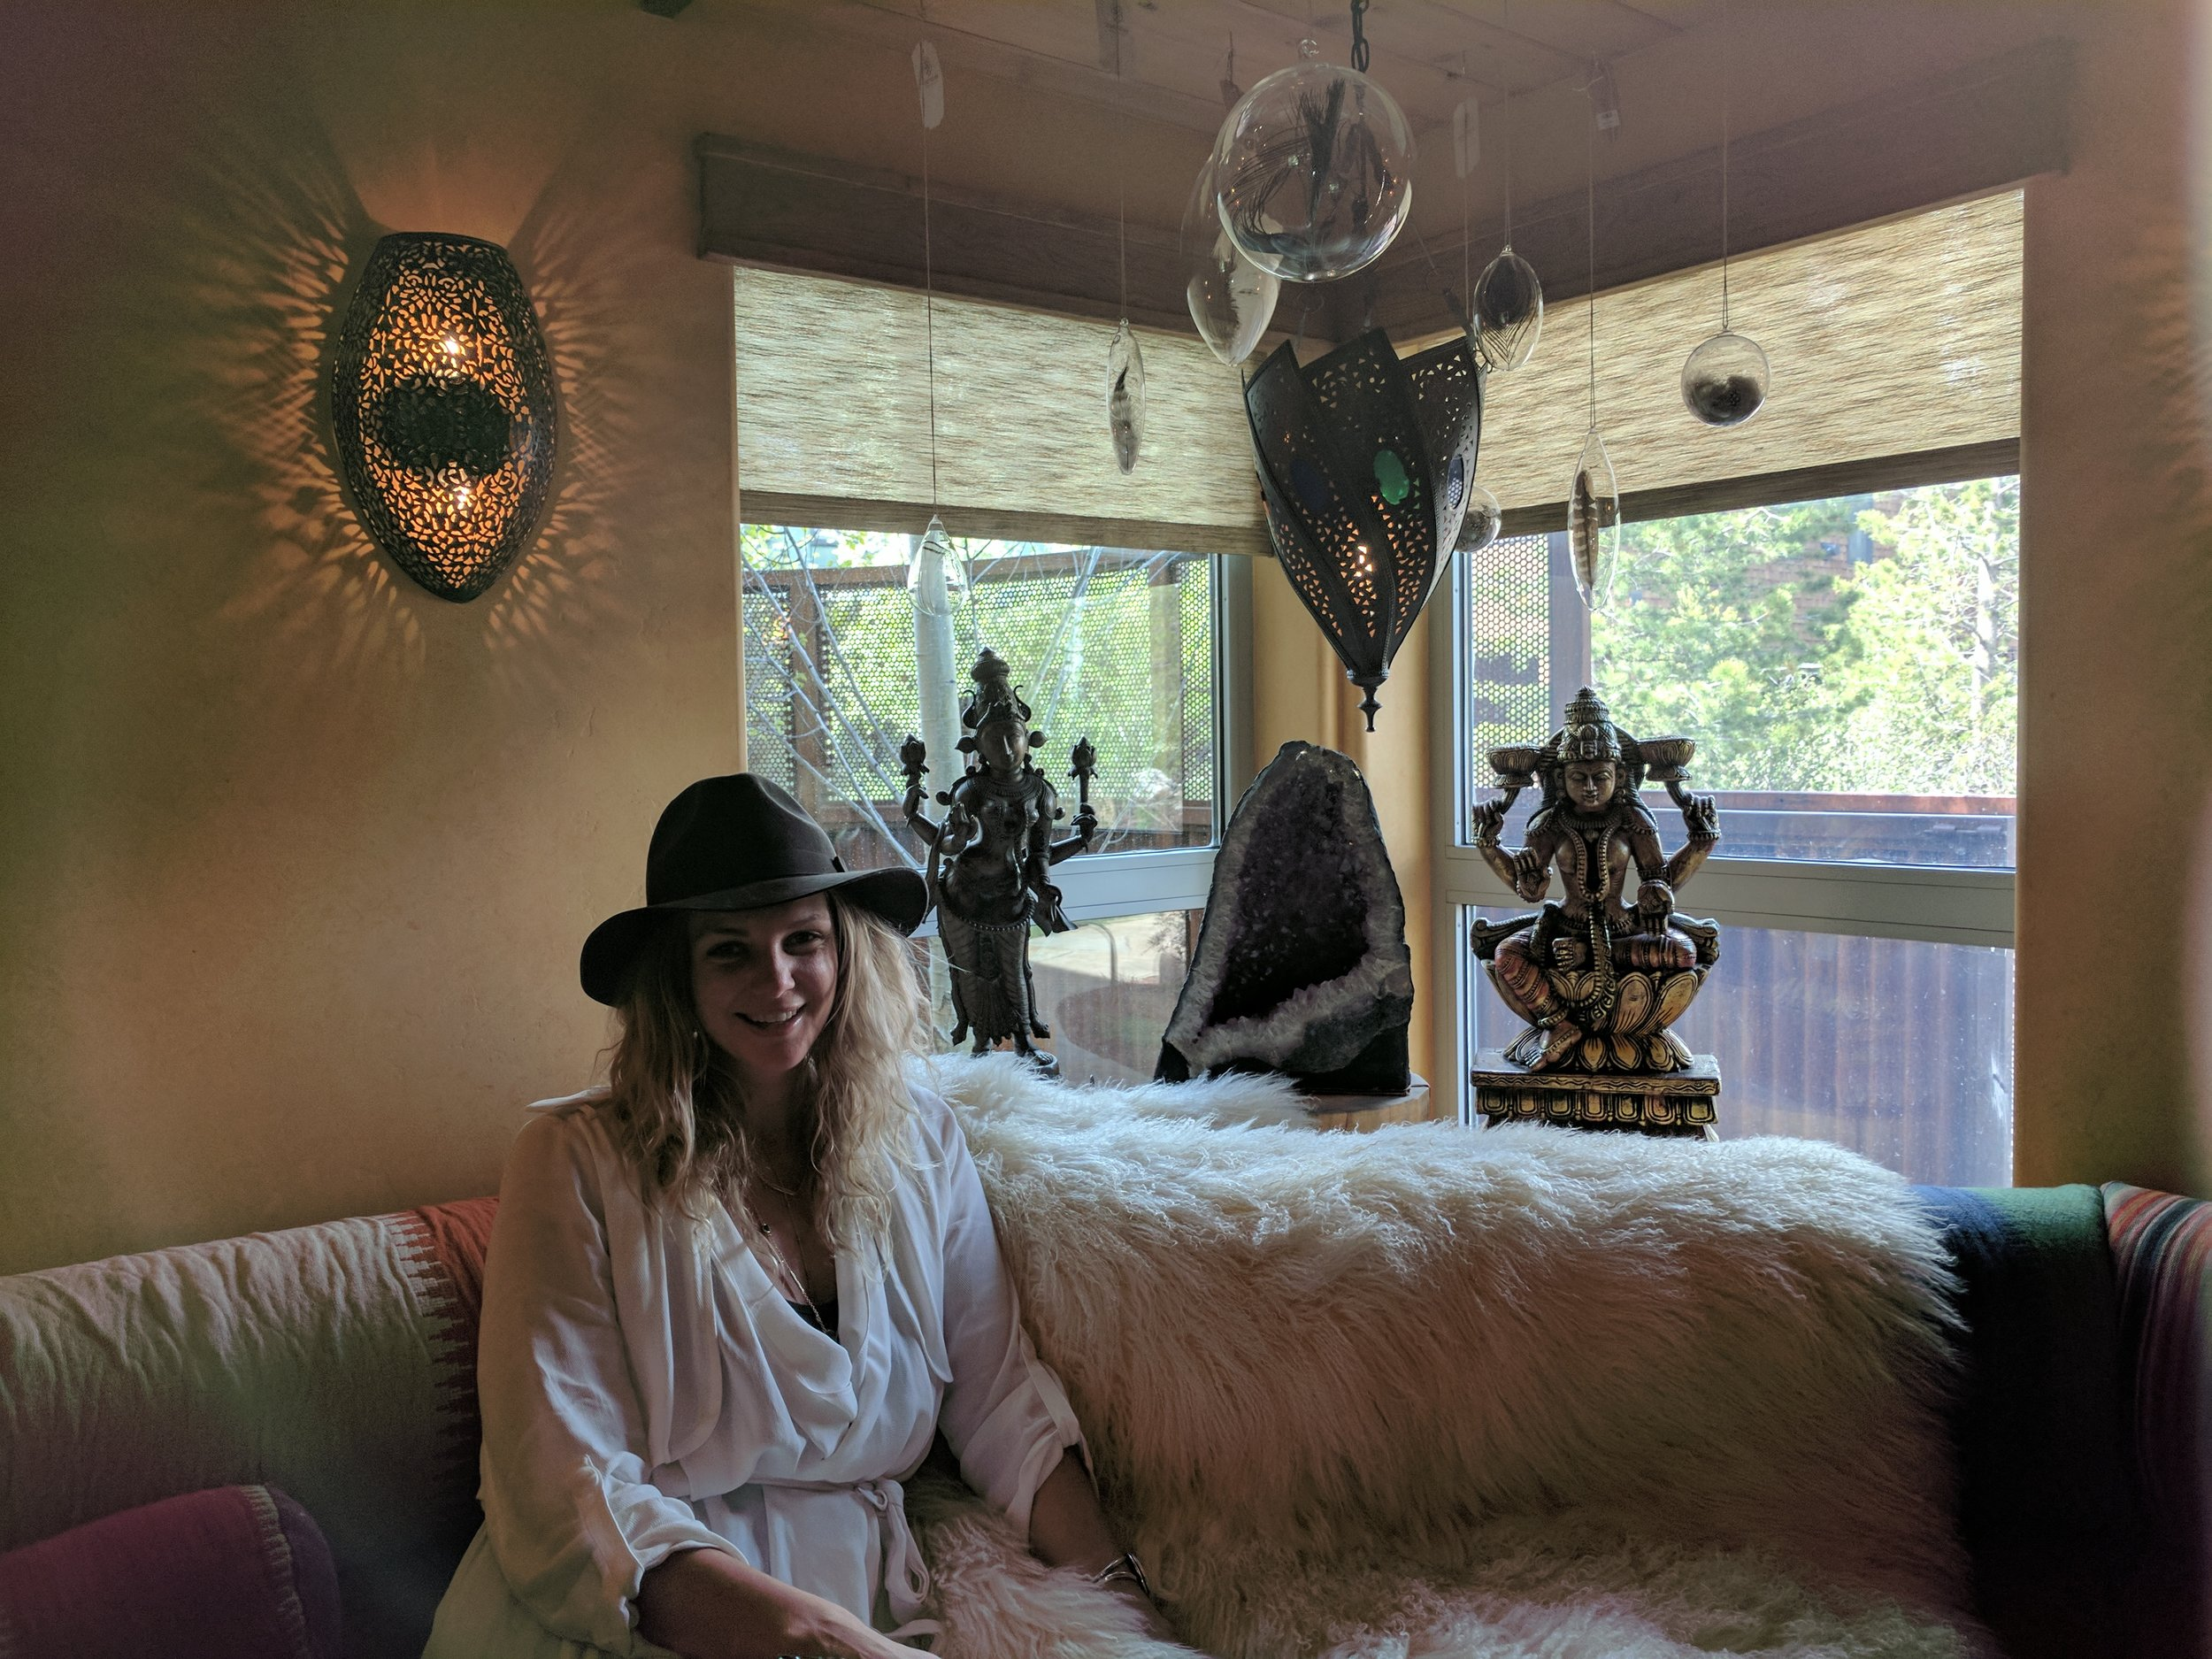 The coziest nook at True Nature Healing Arts Center